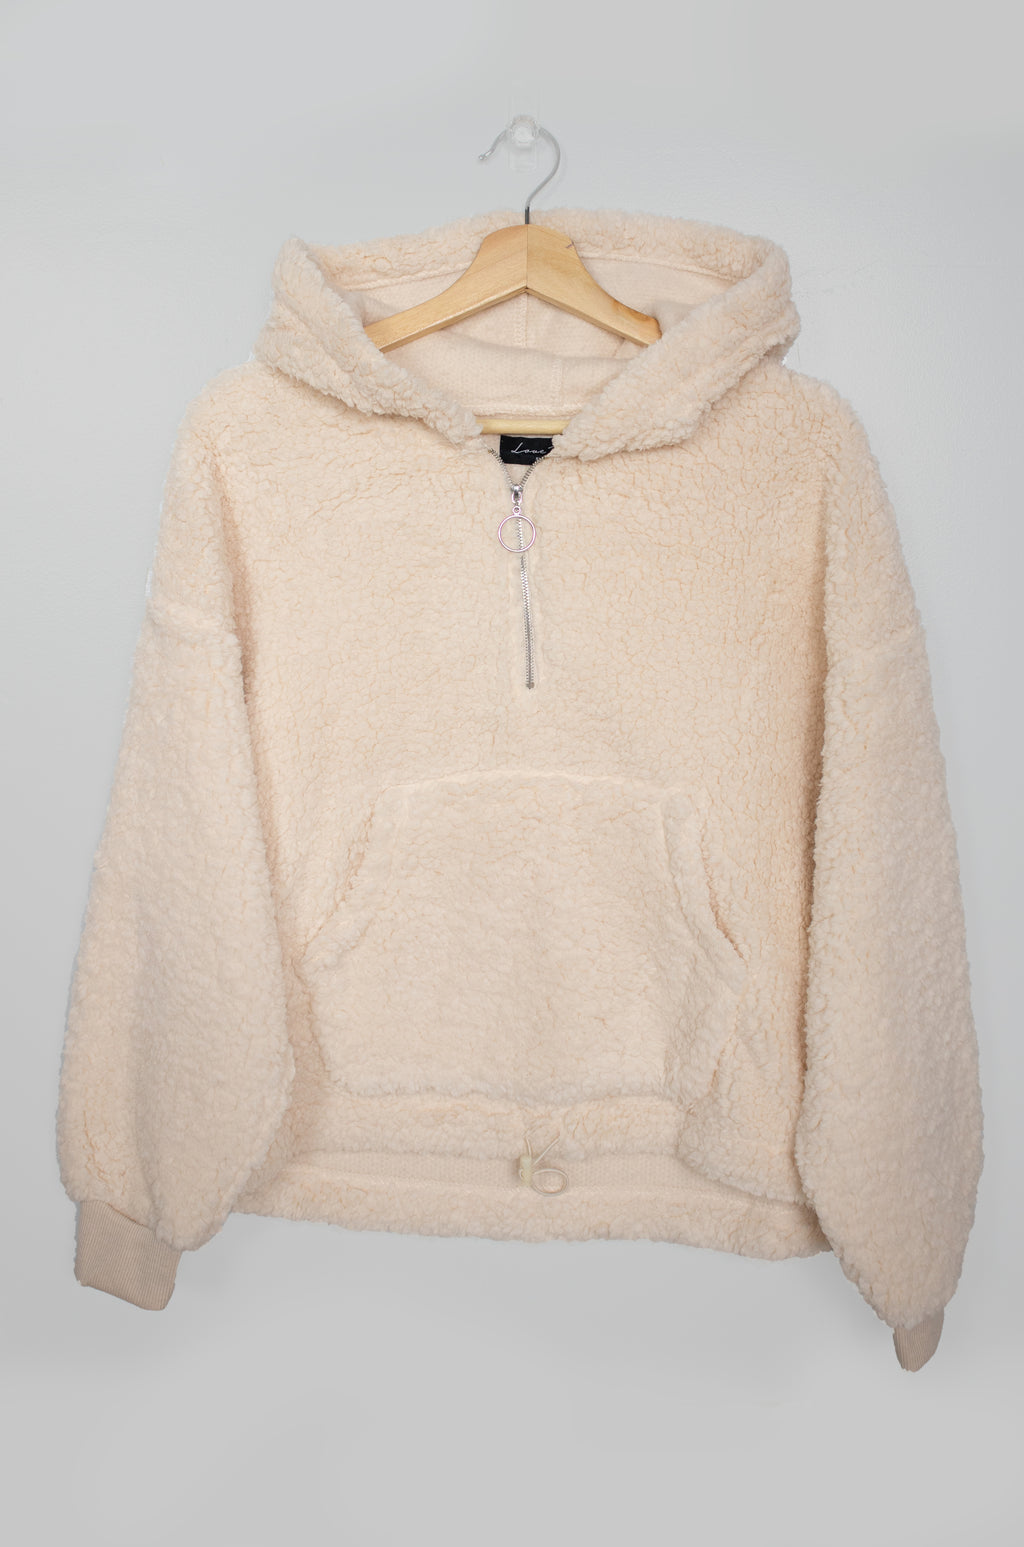 Keep Me Close - Cream Sweater